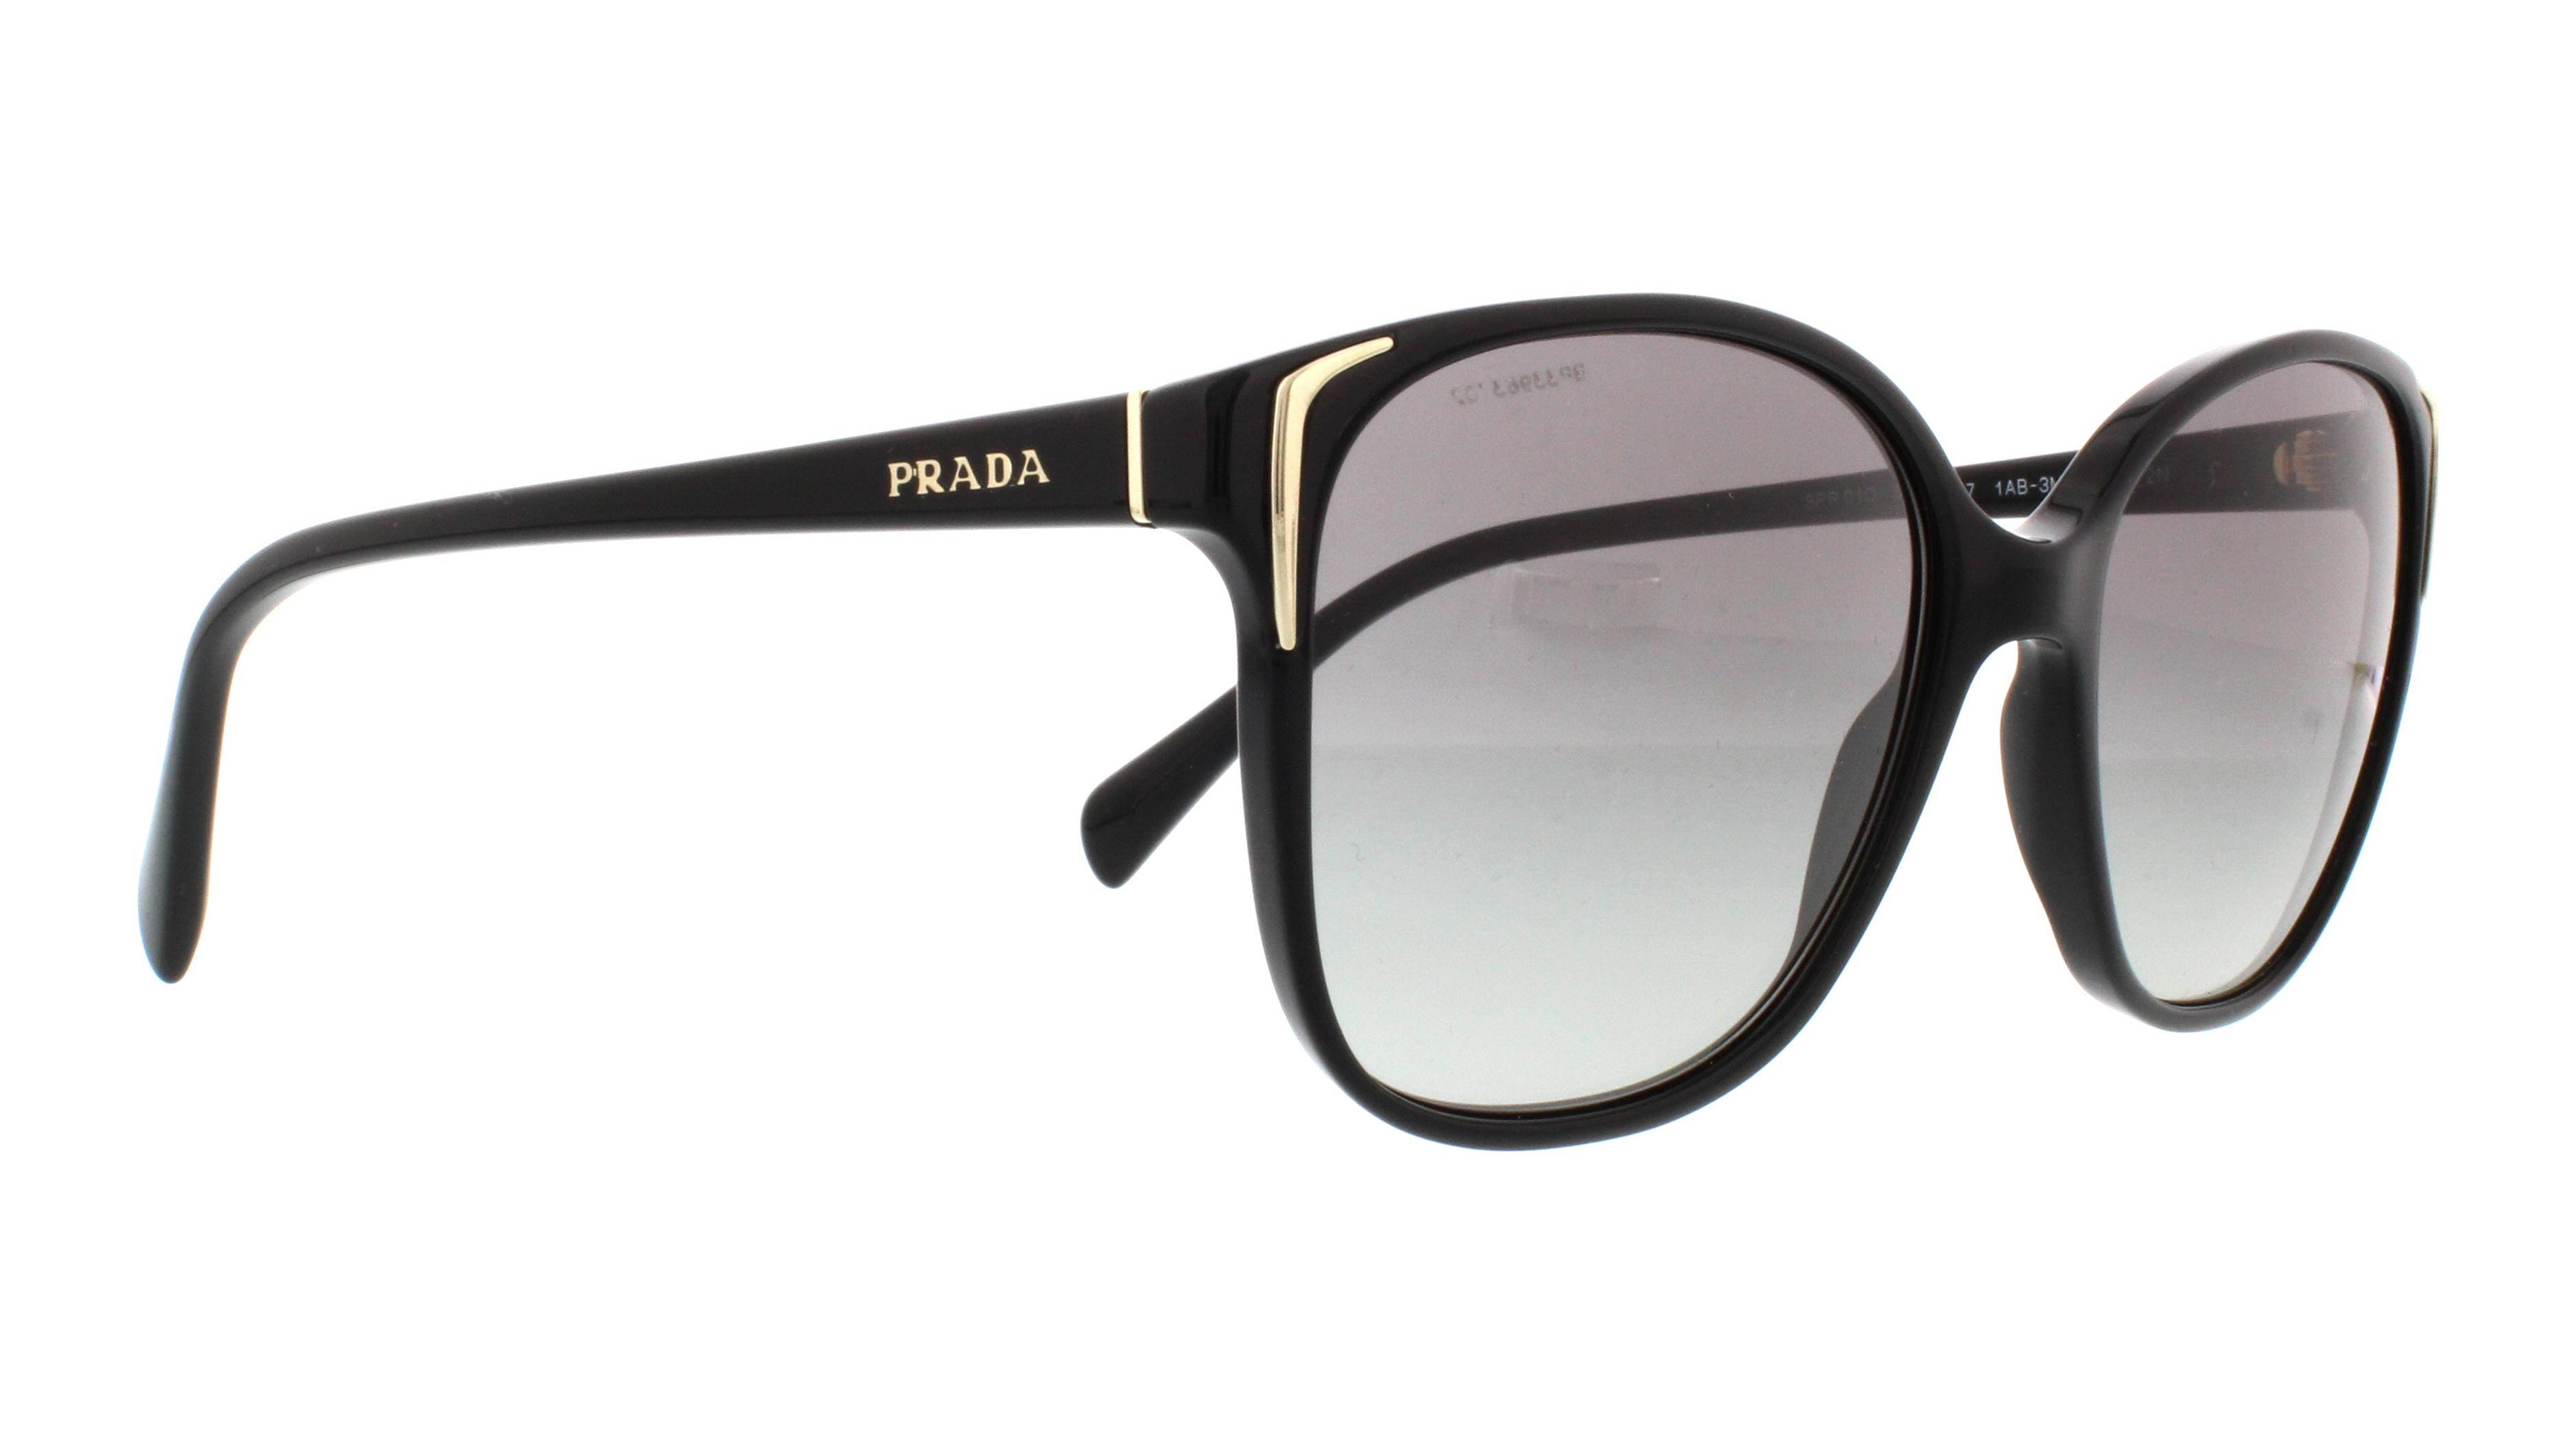 971e12648e72 discount code for prada sunglasses pr01os 1ab3m1 3f8a7 687bc